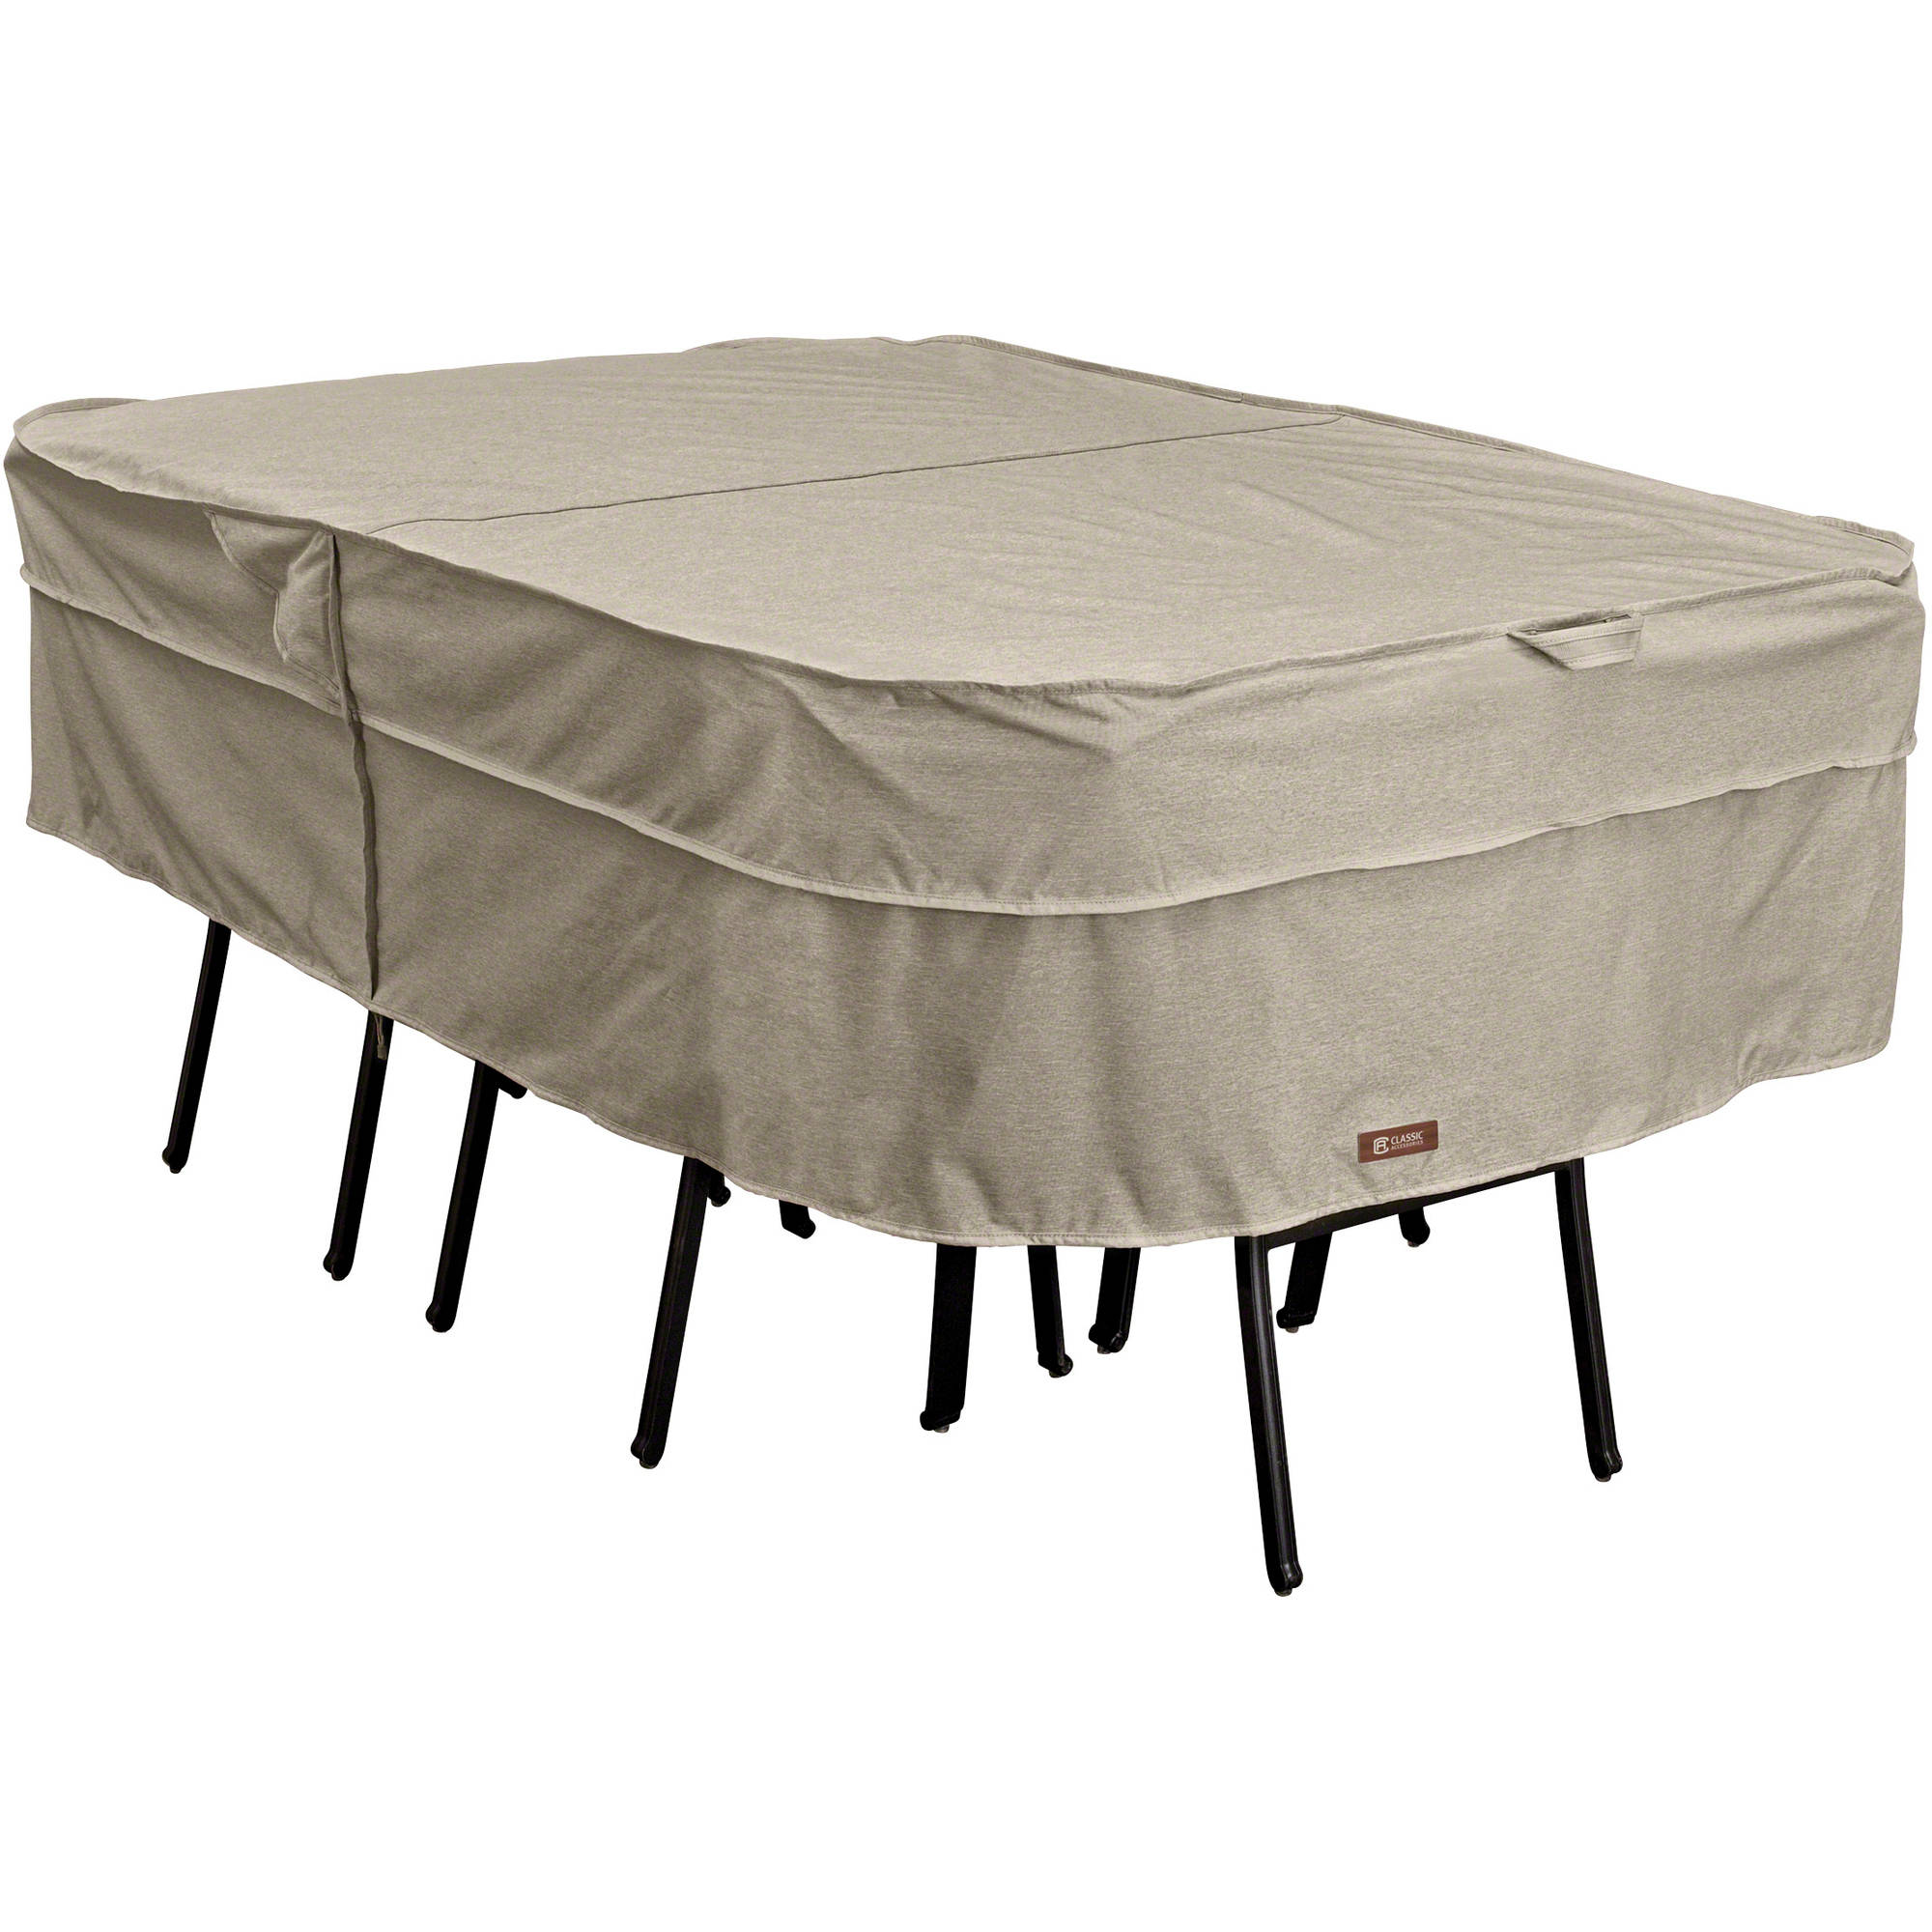 Classic Accessories Montlake FadeSafe Rectangle/Oval Patio Table & Chair Set Cover, Heavy Duty Outdoor Furniture Cover with Waterproof Backing, Large (55-654-046701-RT)